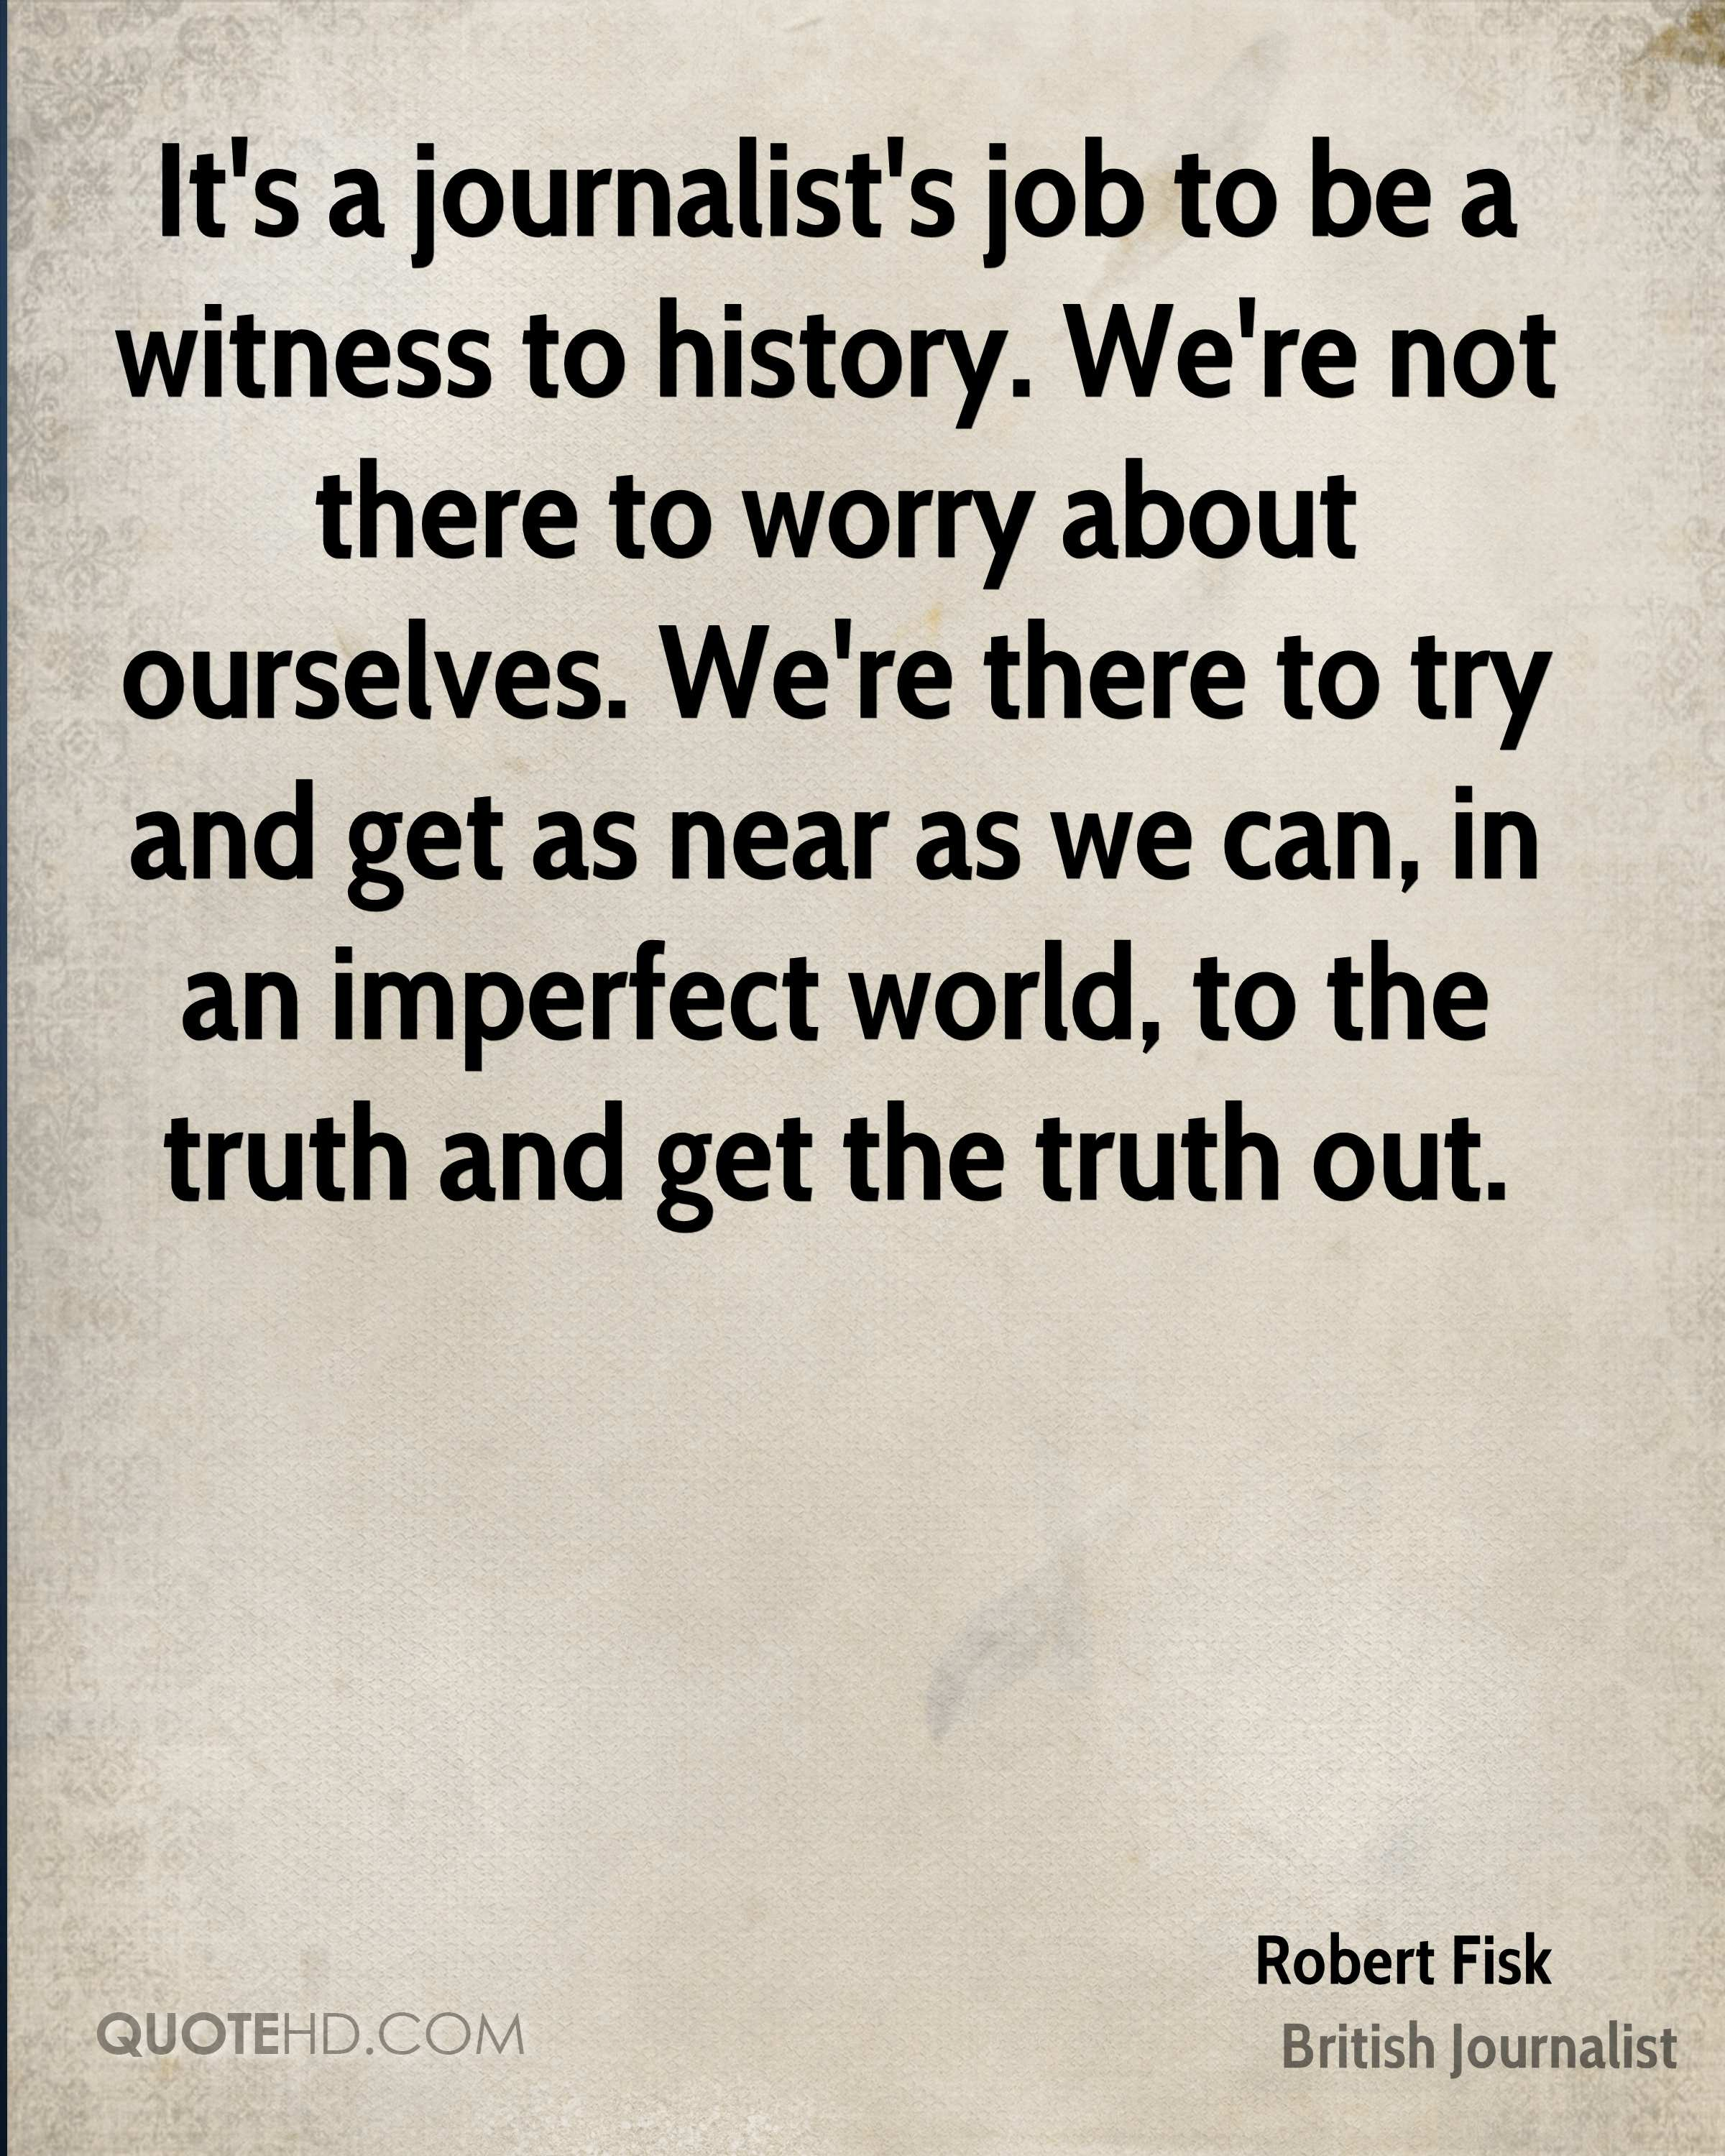 It's a journalist's job to be a witness to history. We're not there to worry about ourselves. We're there to try and get as near as we can, in an imperfect world, to the truth and get the truth out.